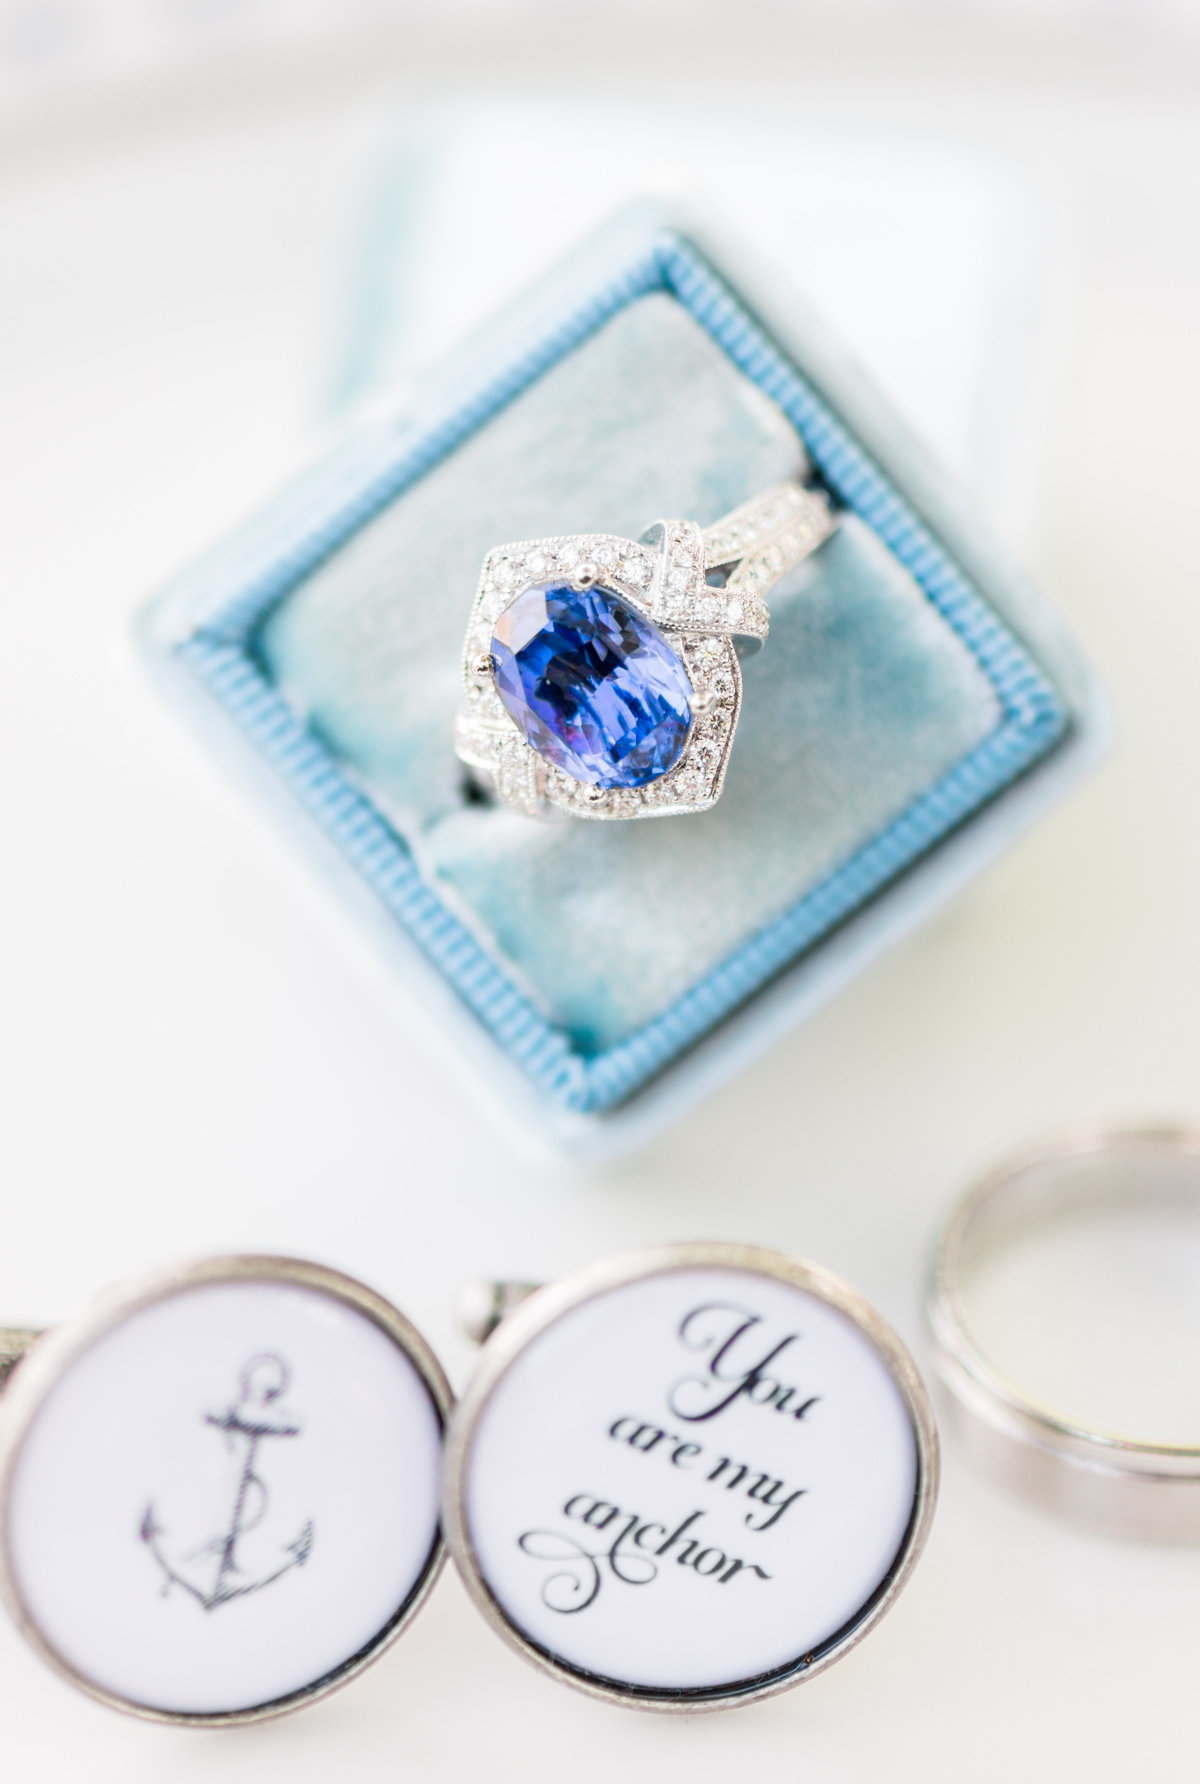 Bride's Ring from Elegant DC Wedding